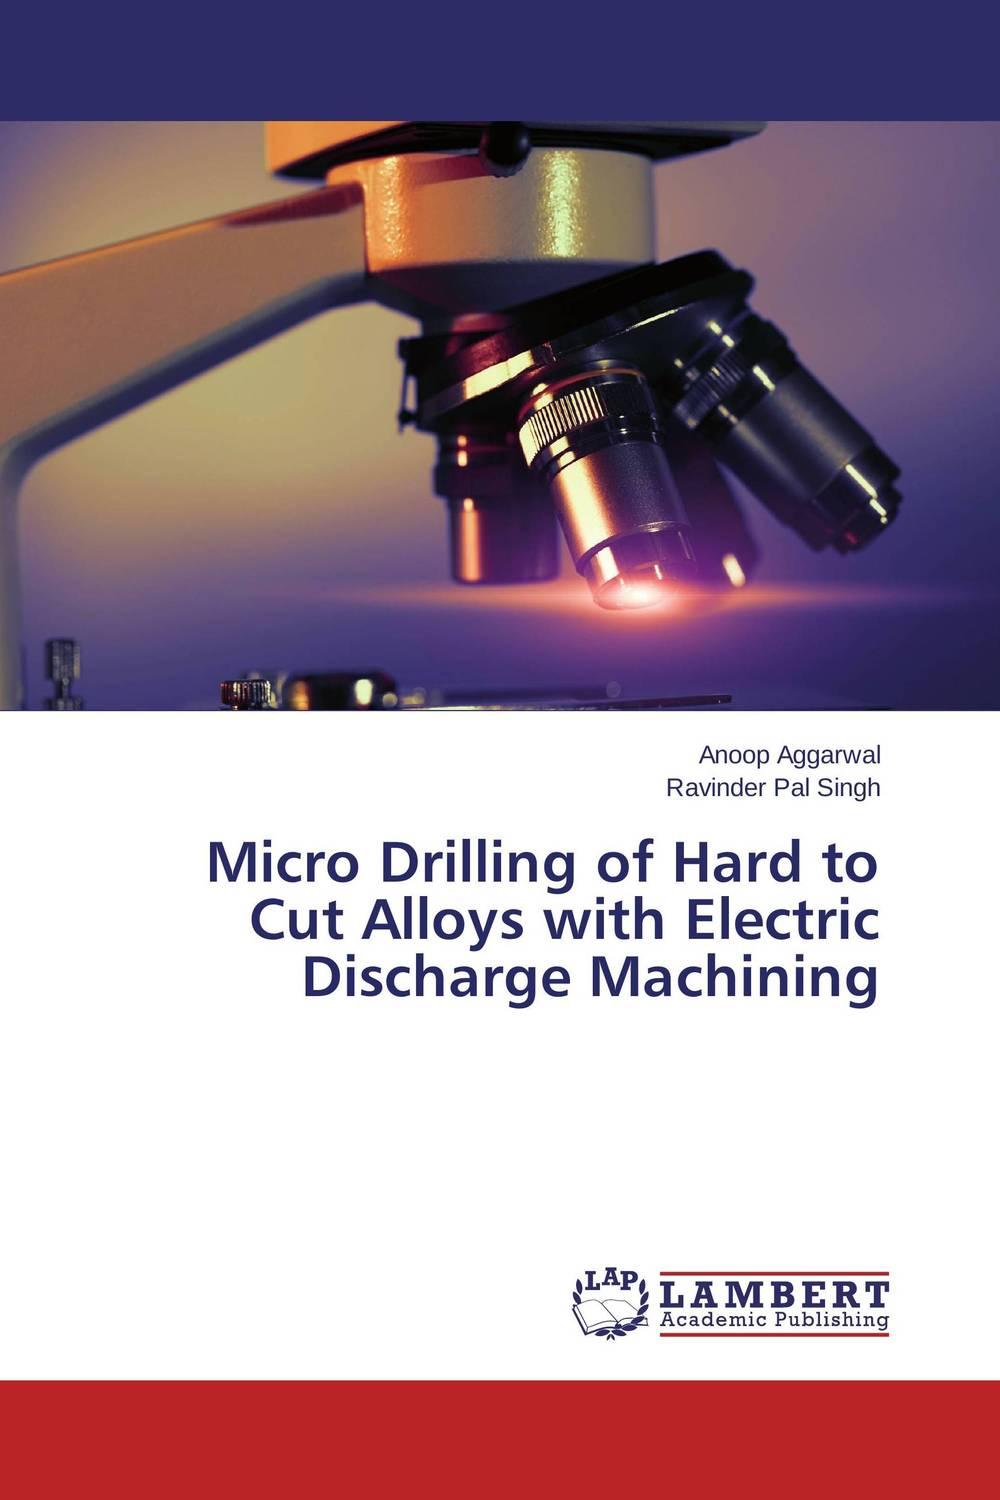 Micro Drilling of Hard to Cut Alloys with Electric Discharge Machining